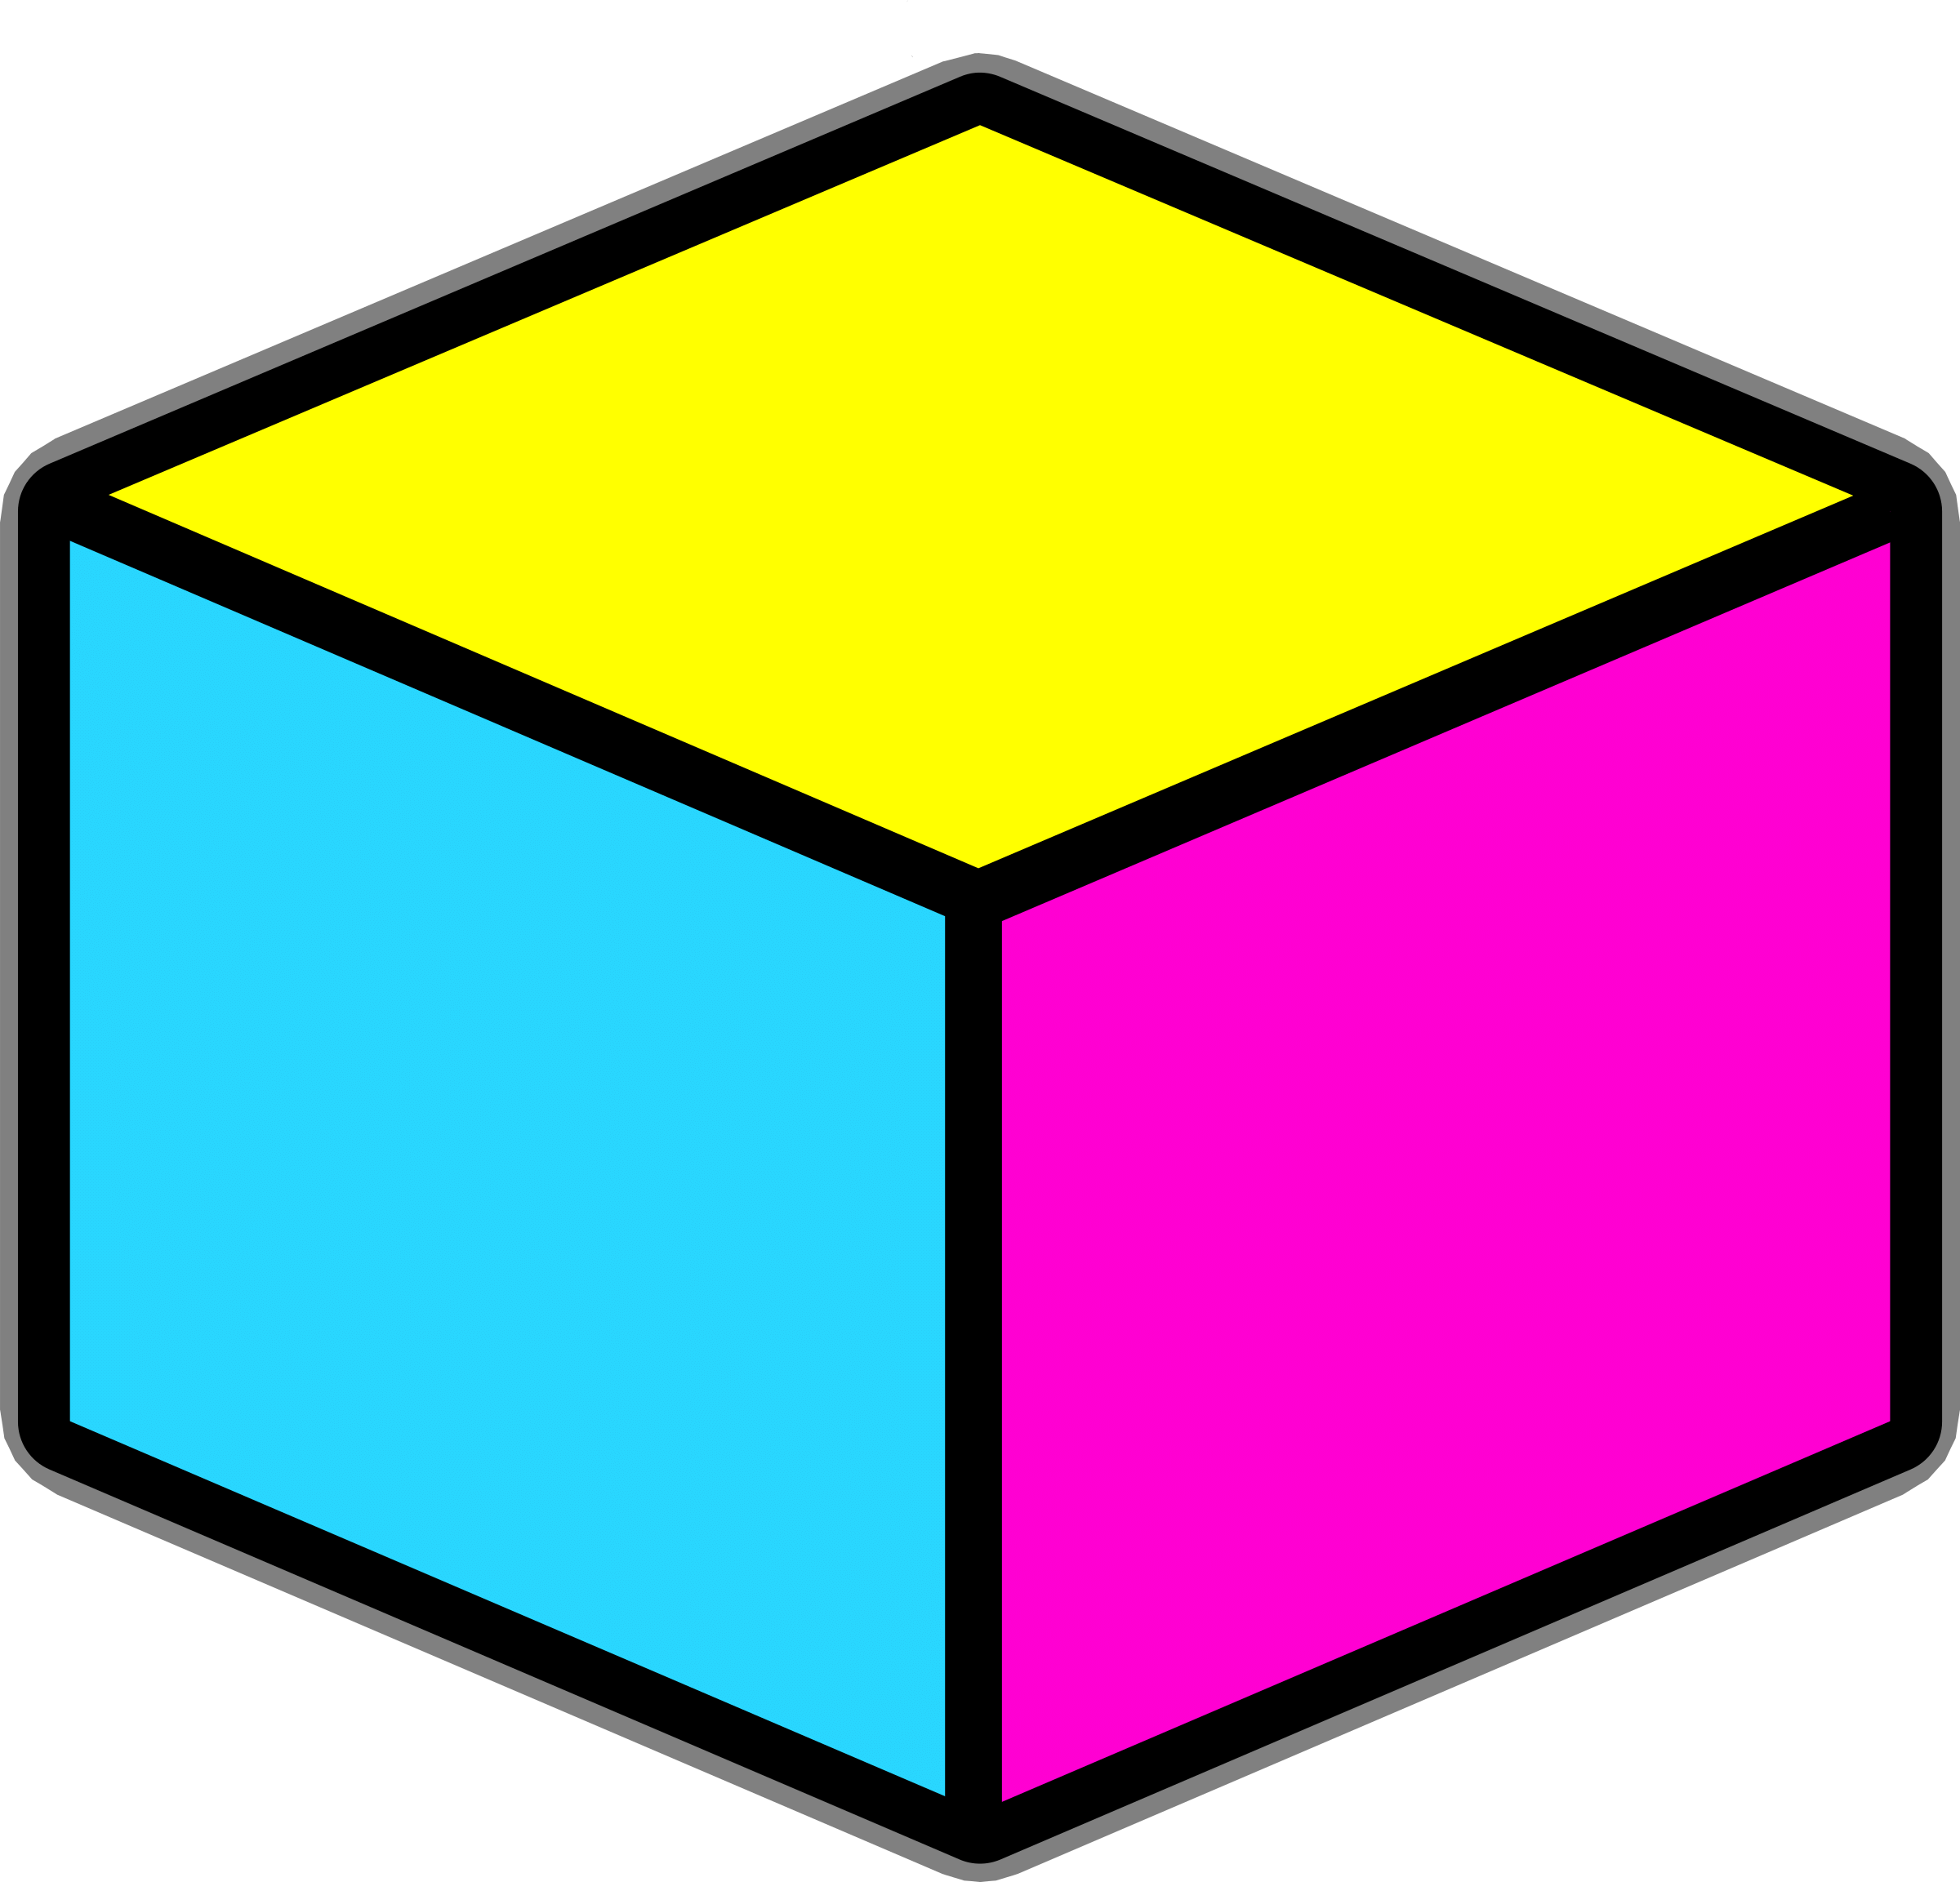 Cube Clipart At Getdrawings Com Free For Personal Use Cube Clipart